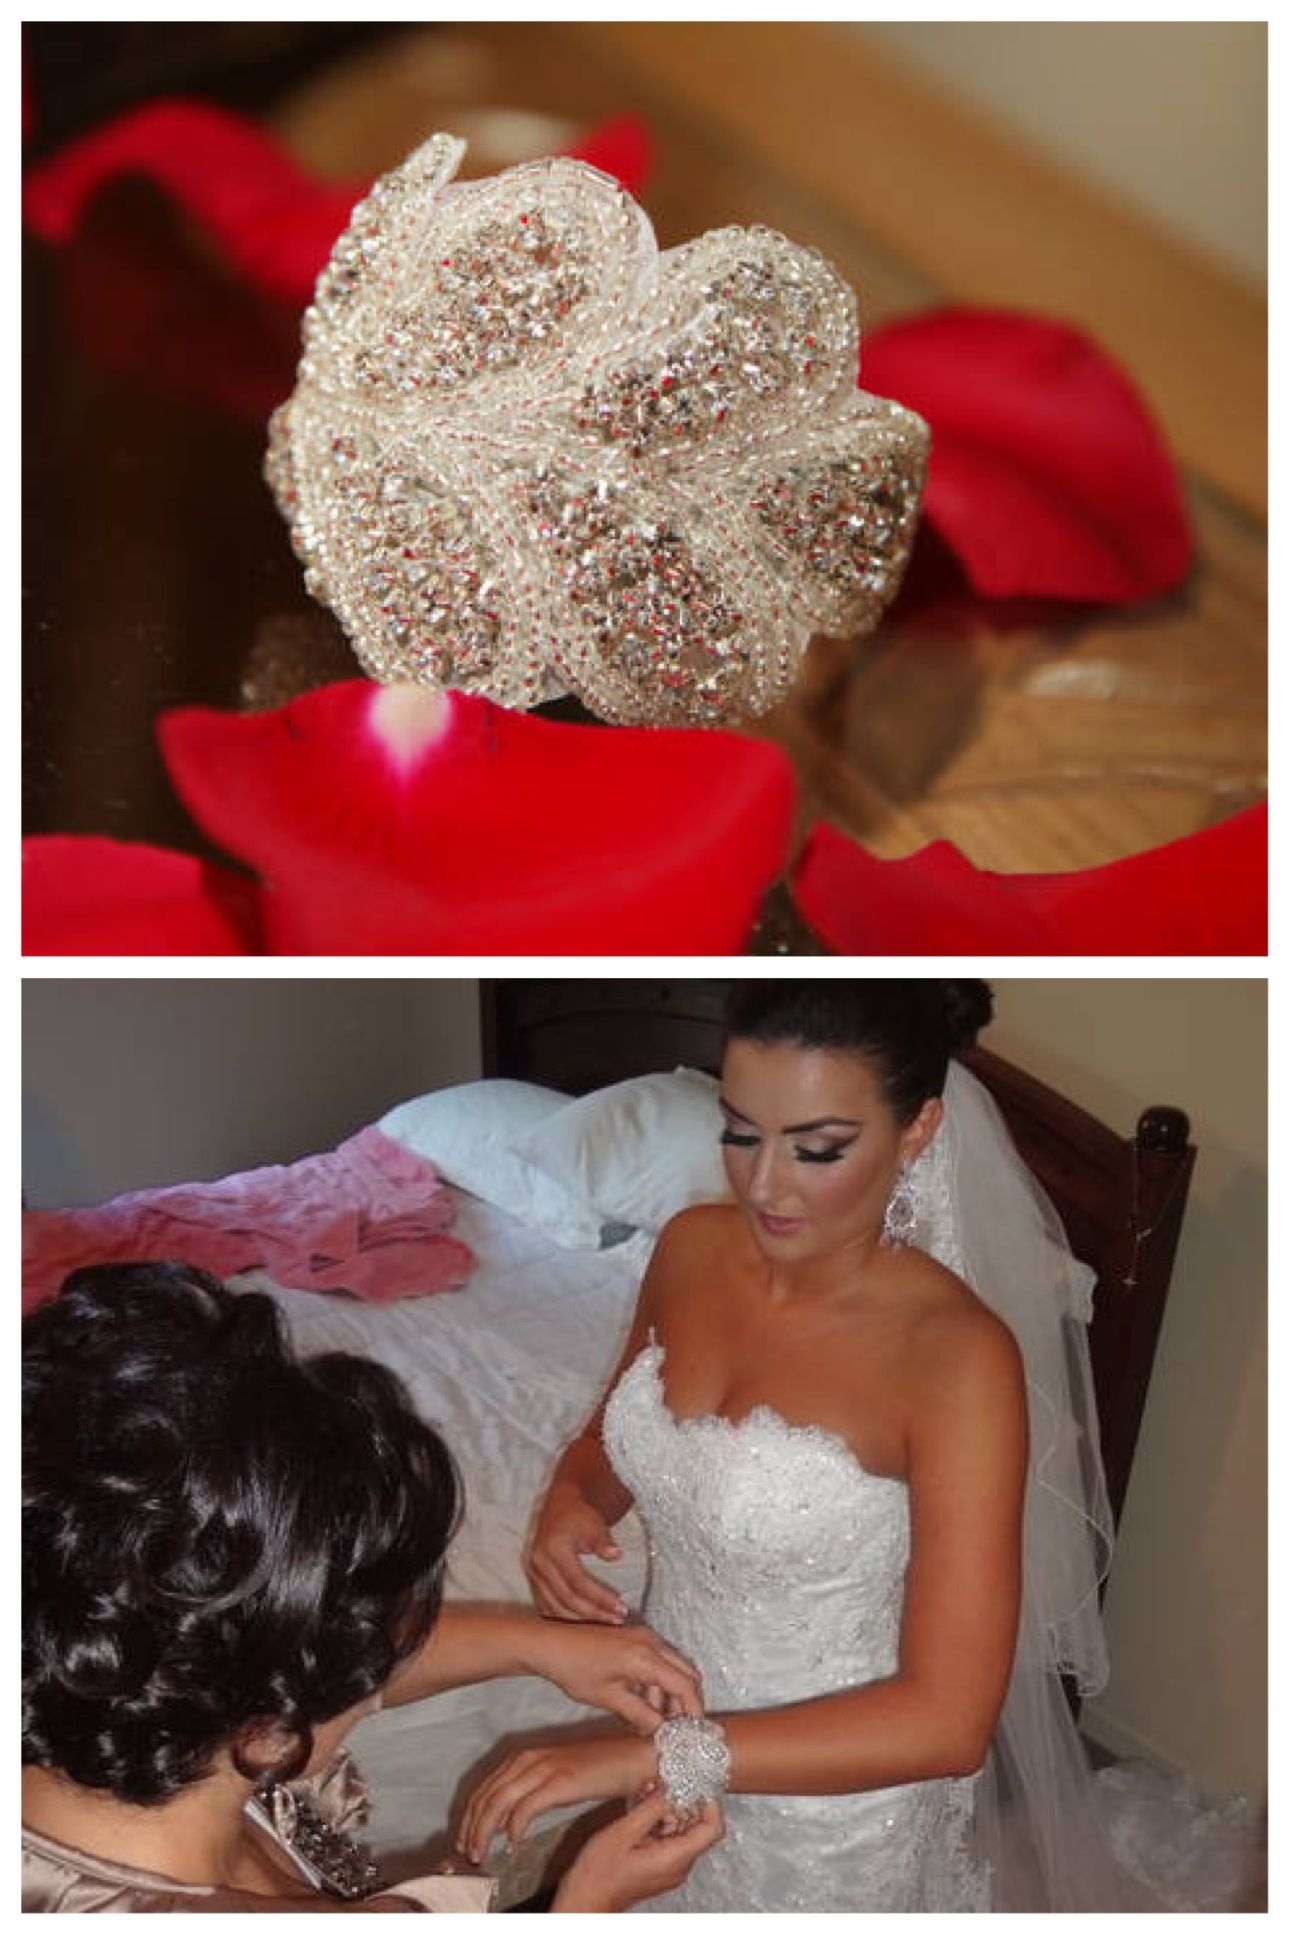 Lmo crystal bridal cuff bracelet and the beautiful bride is was